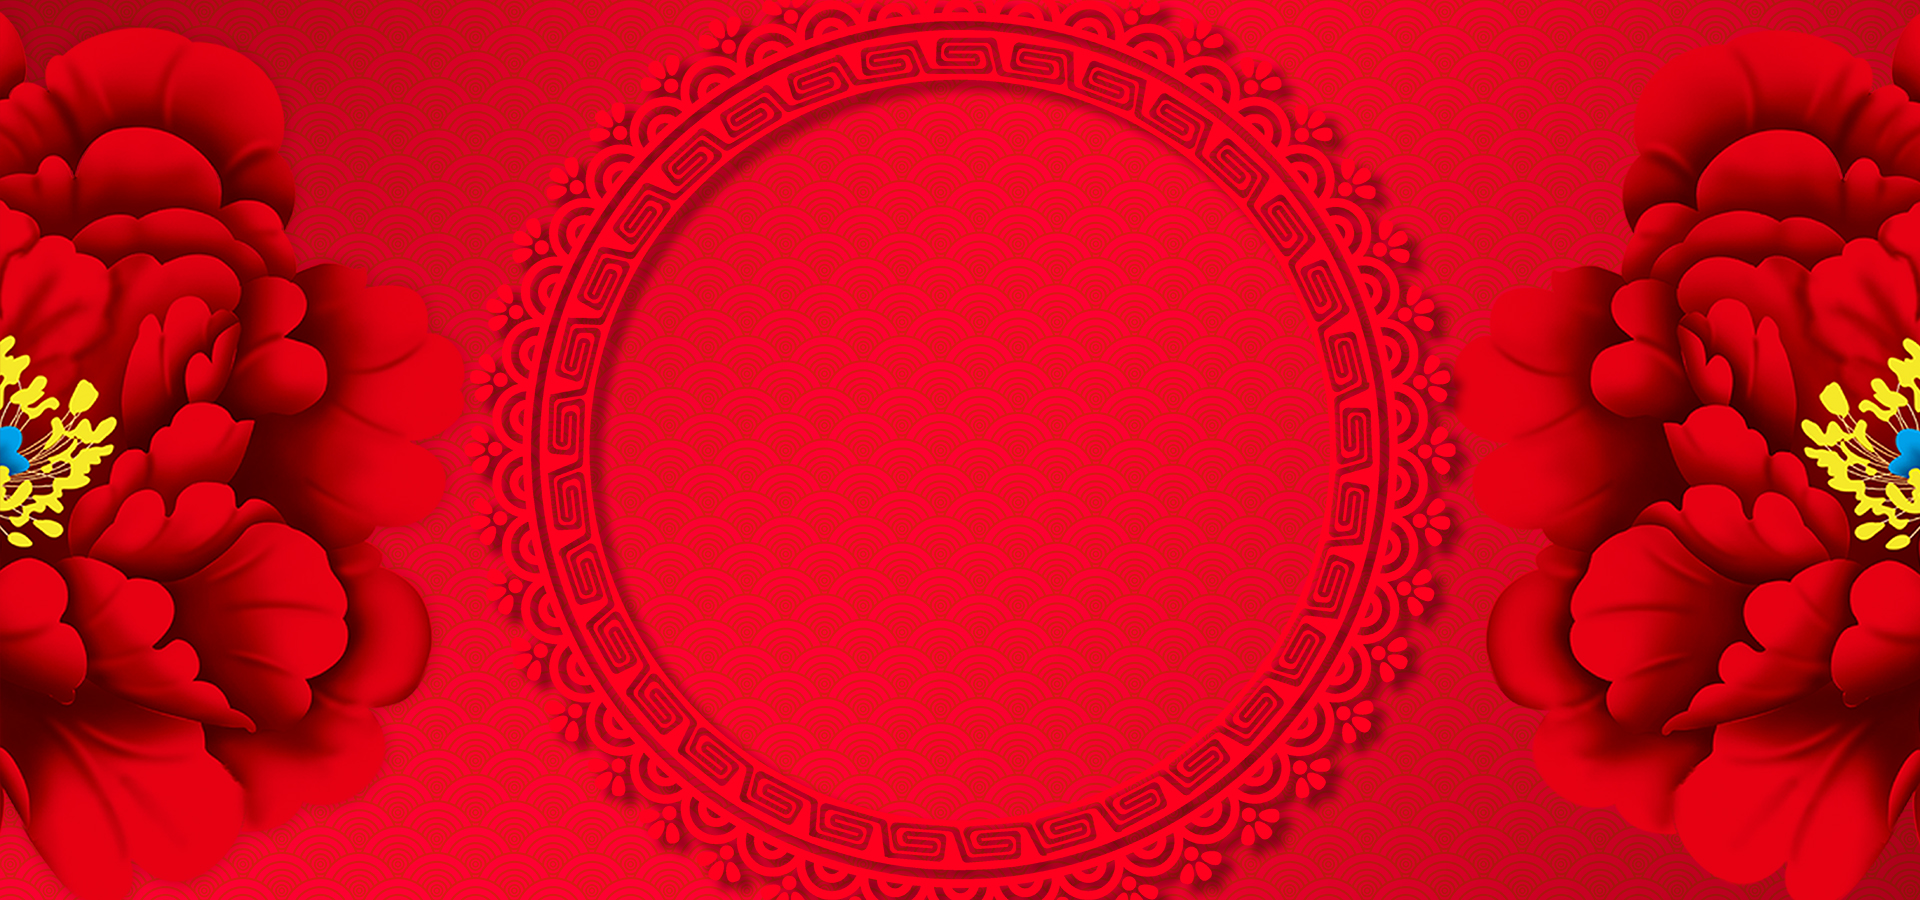 chinese new year red background  floral  spring festival